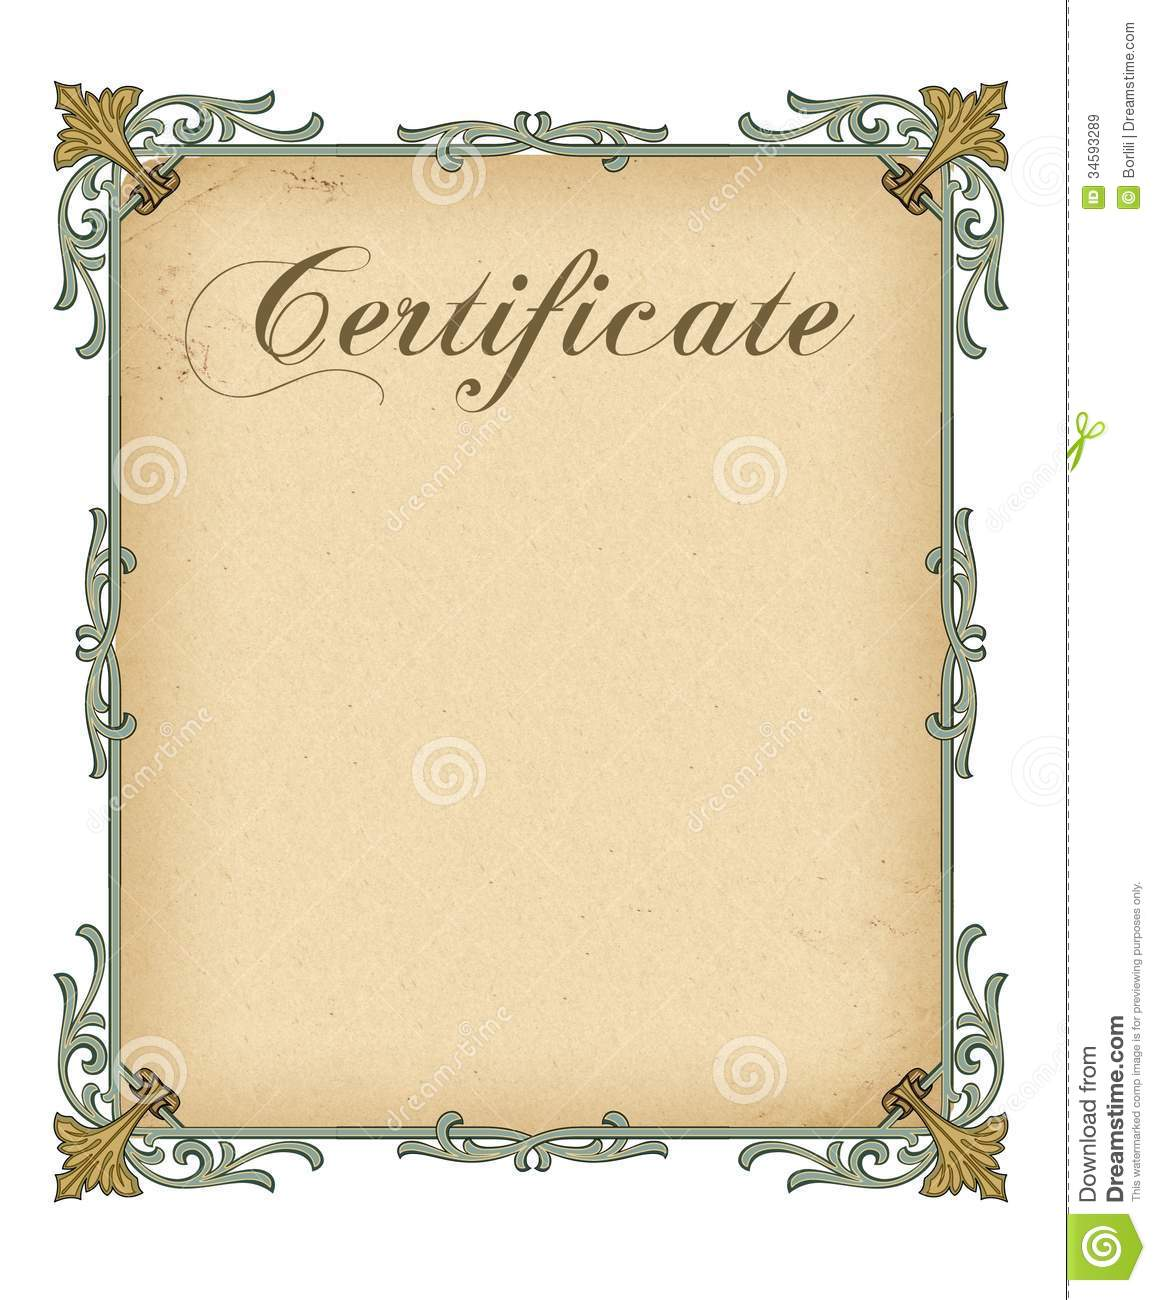 Blank certificate template stock illustration illustration of blank certificate template yadclub Images